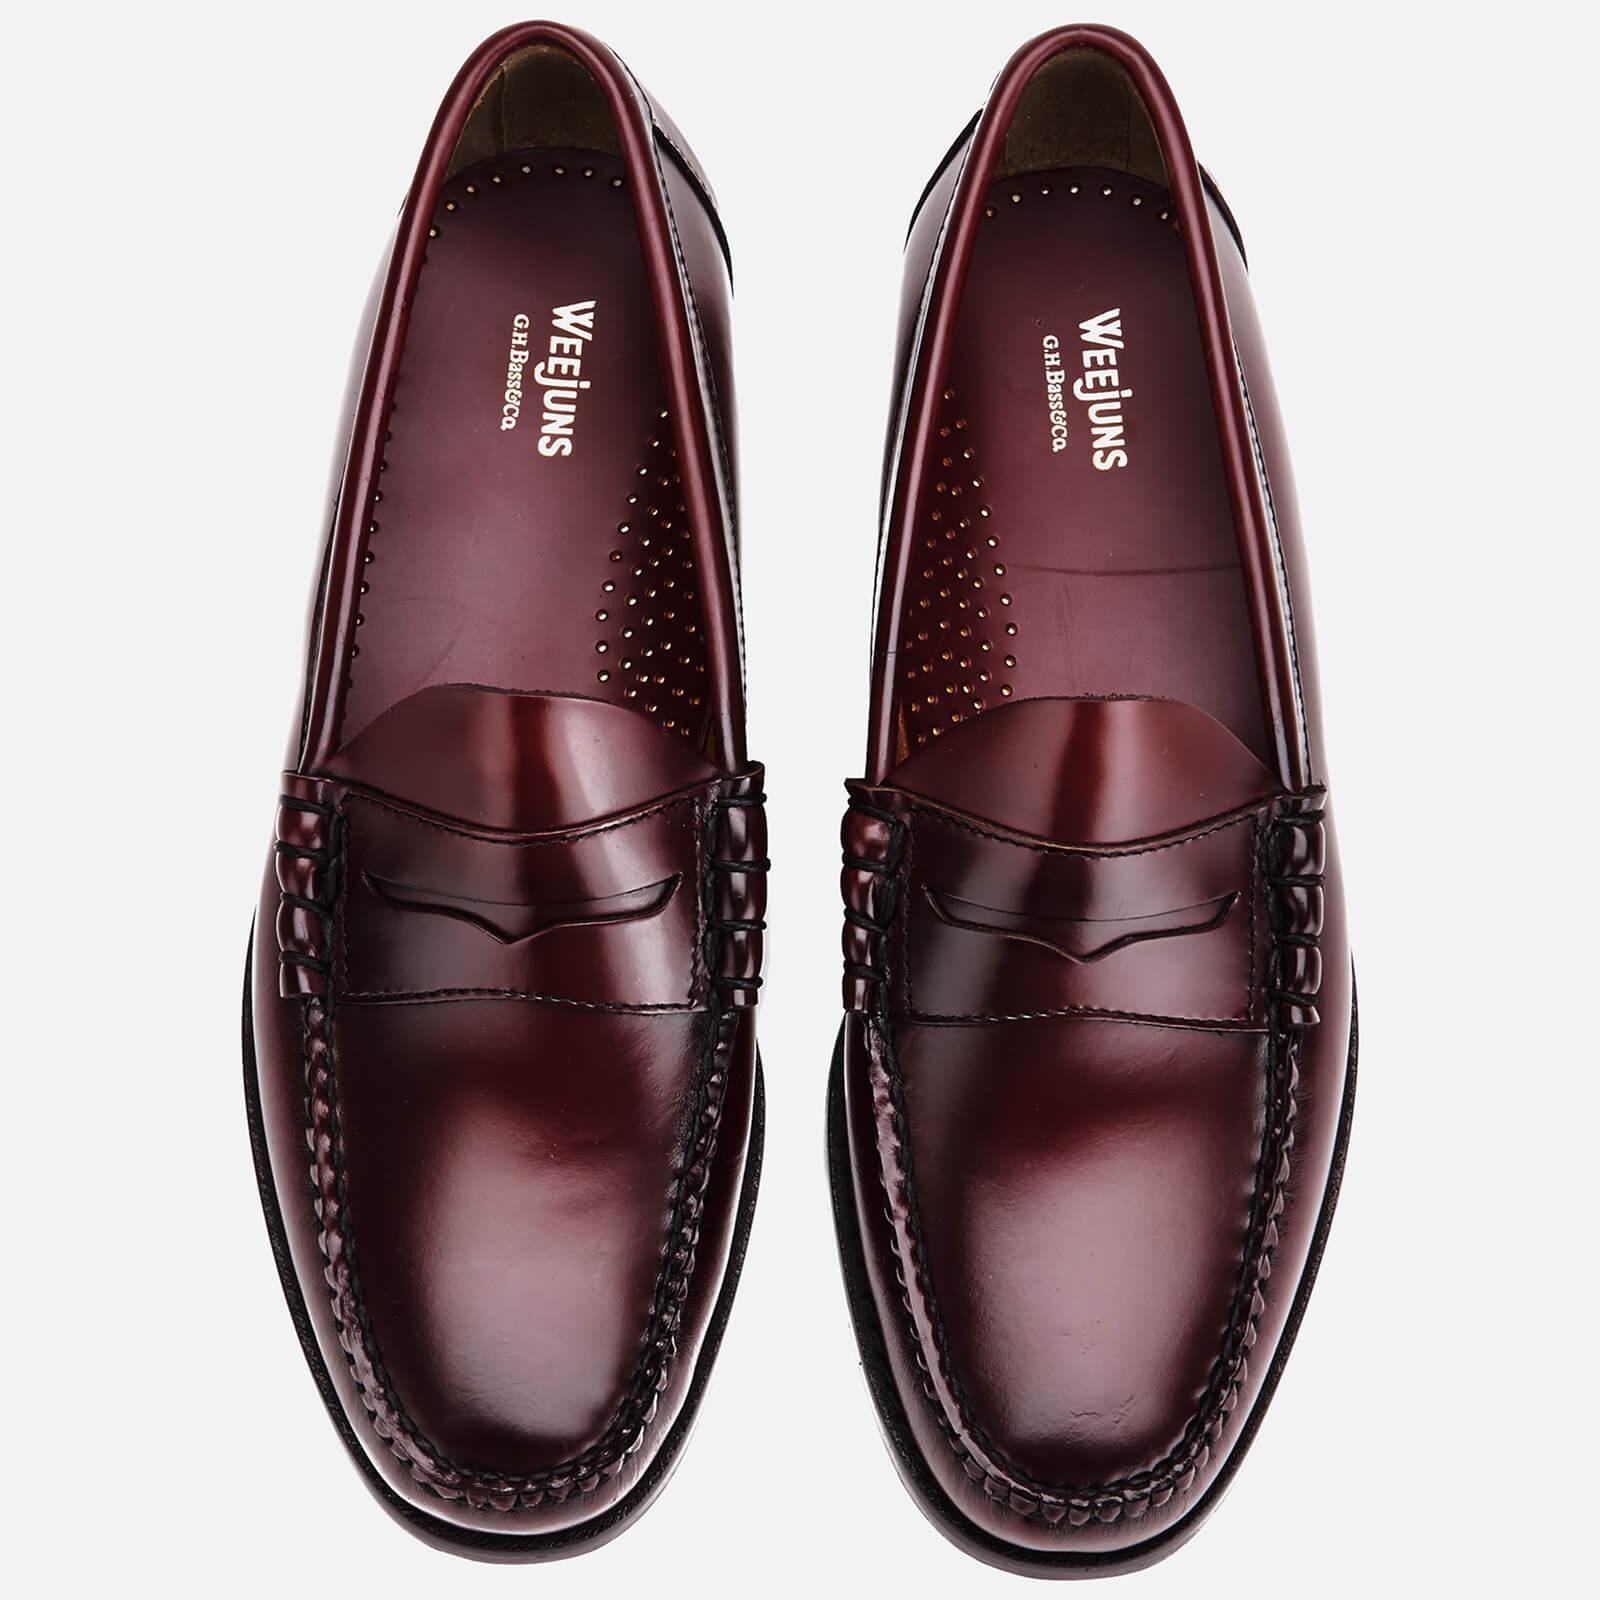 89116ff366c G.H.BASS - Multicolor Men s Larson Moc Leather Penny Loafers for Men -  Lyst. View fullscreen